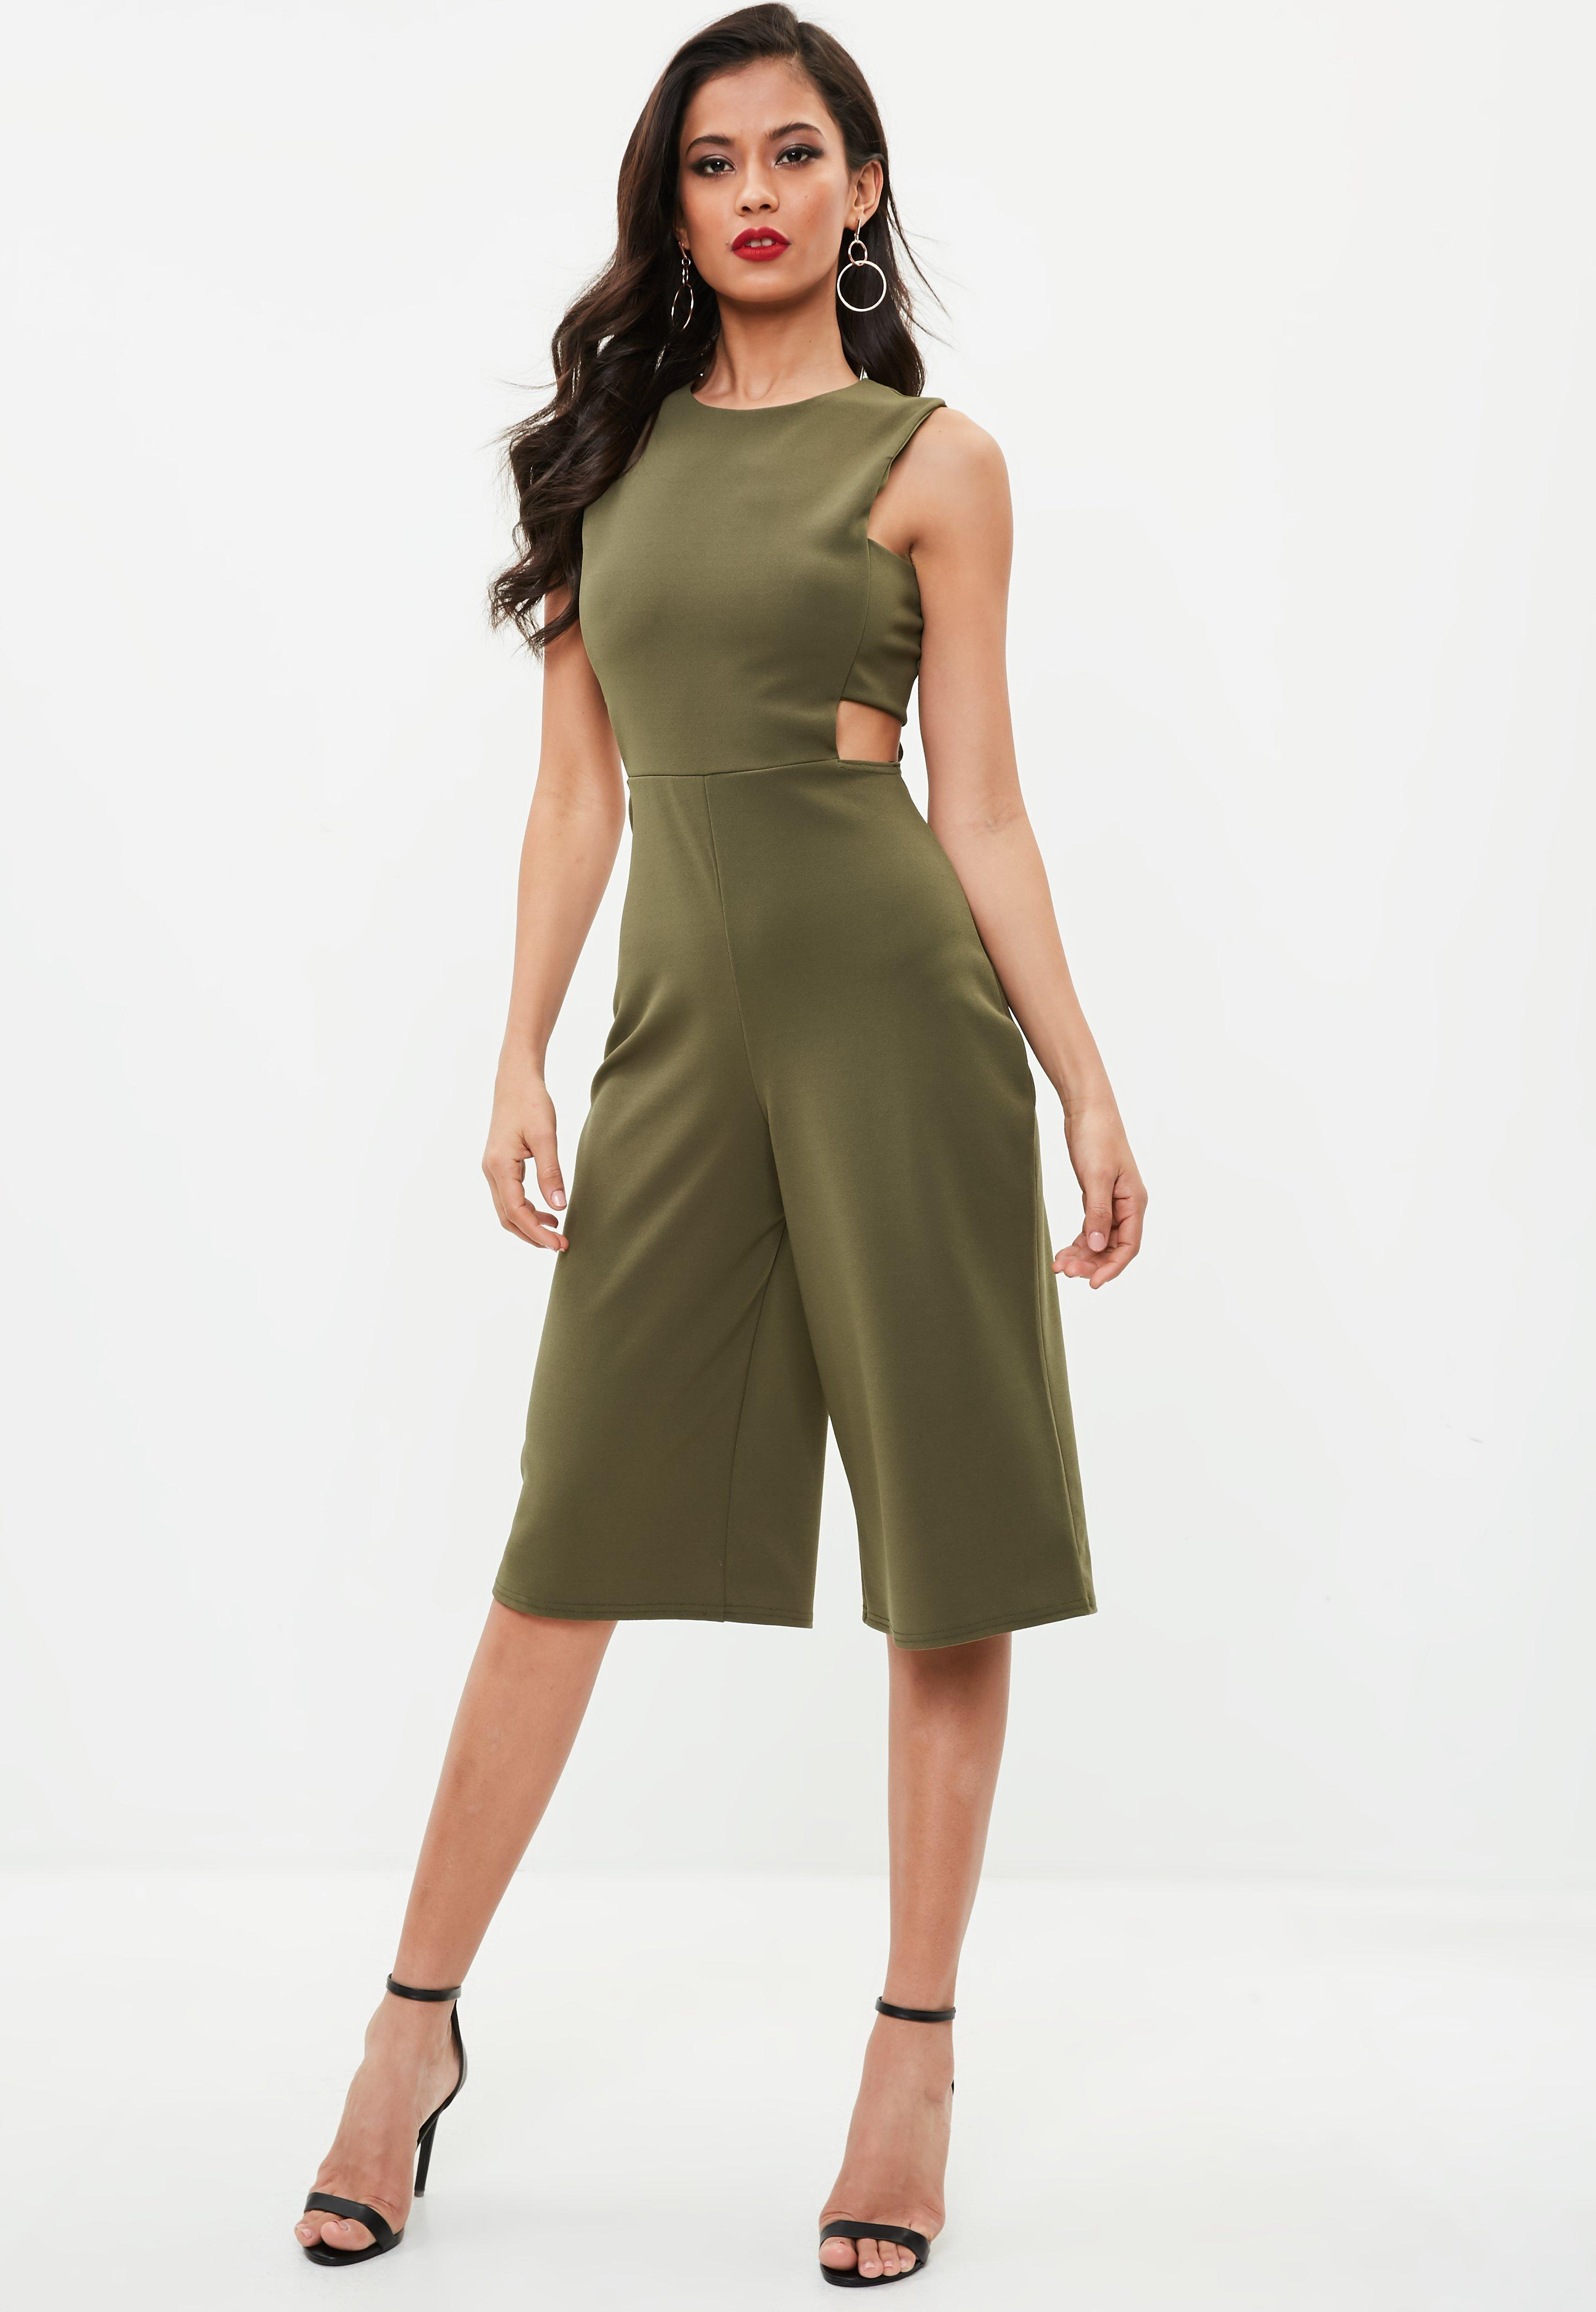 cc743f3bf07 Lyst - Missguided Khaki Side Tab Culotte Jumpsuit in Green